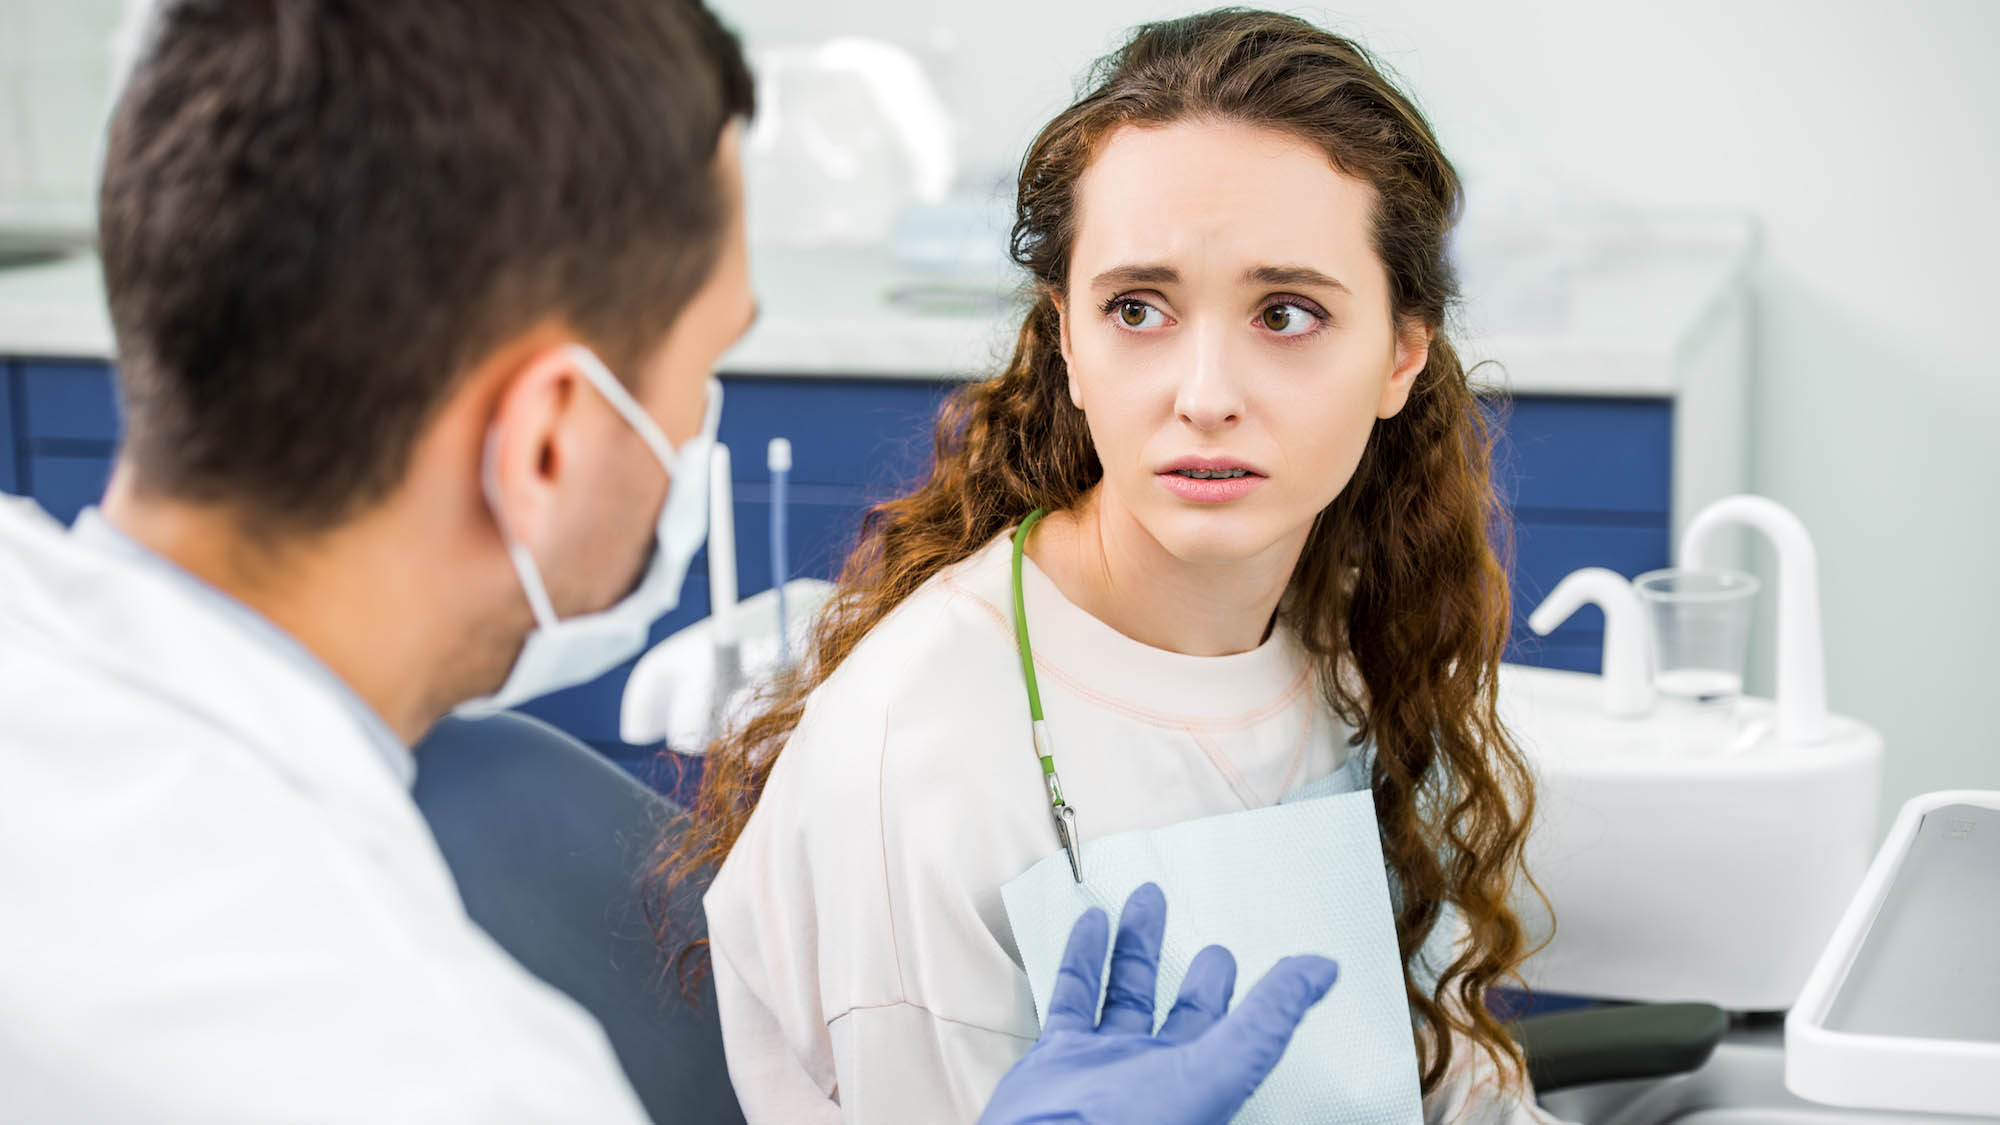 Examining body dysmorphic disorder in dental patients